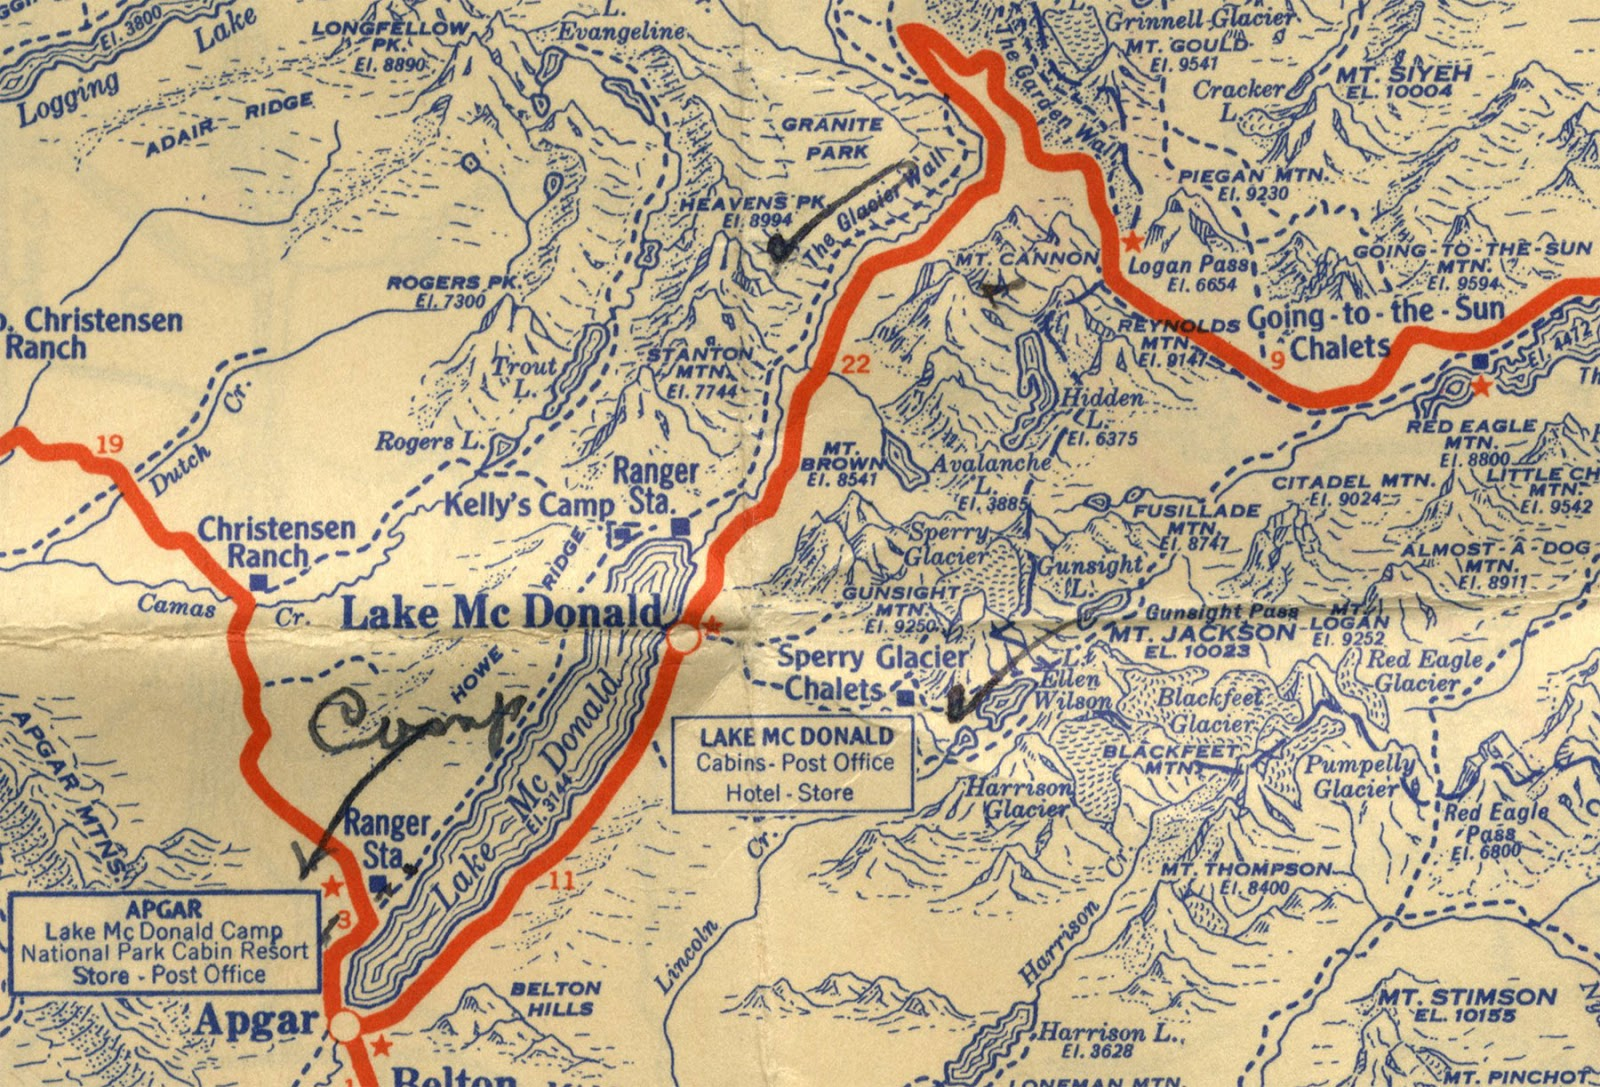 robert s map avalanche lake and mt cannon are shown